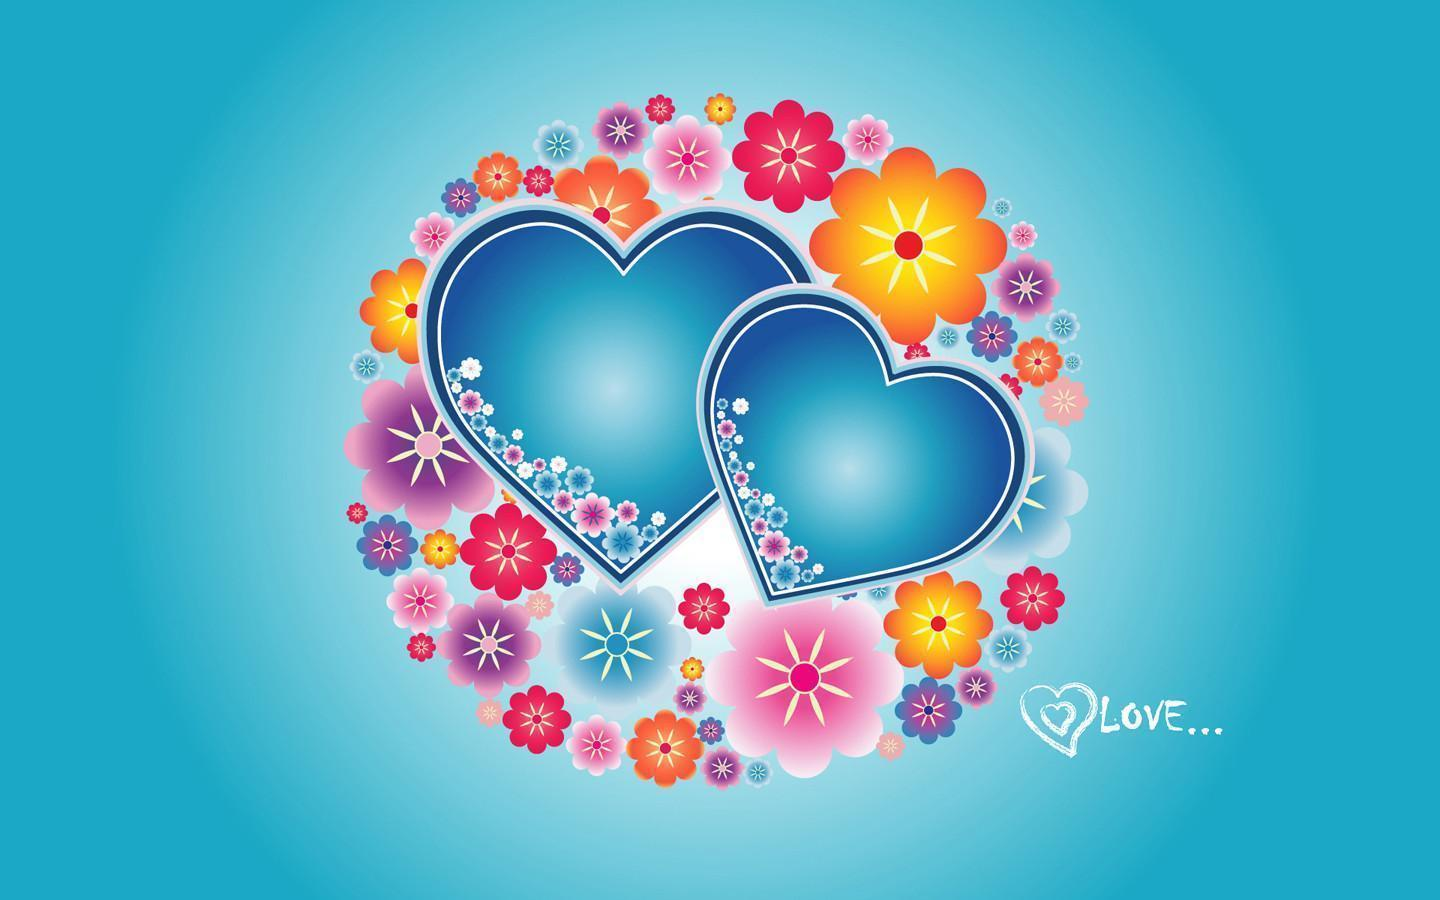 Love Heart Images Hd Wallpaper : Love Heart Wallpapers HD - Wallpaper cave